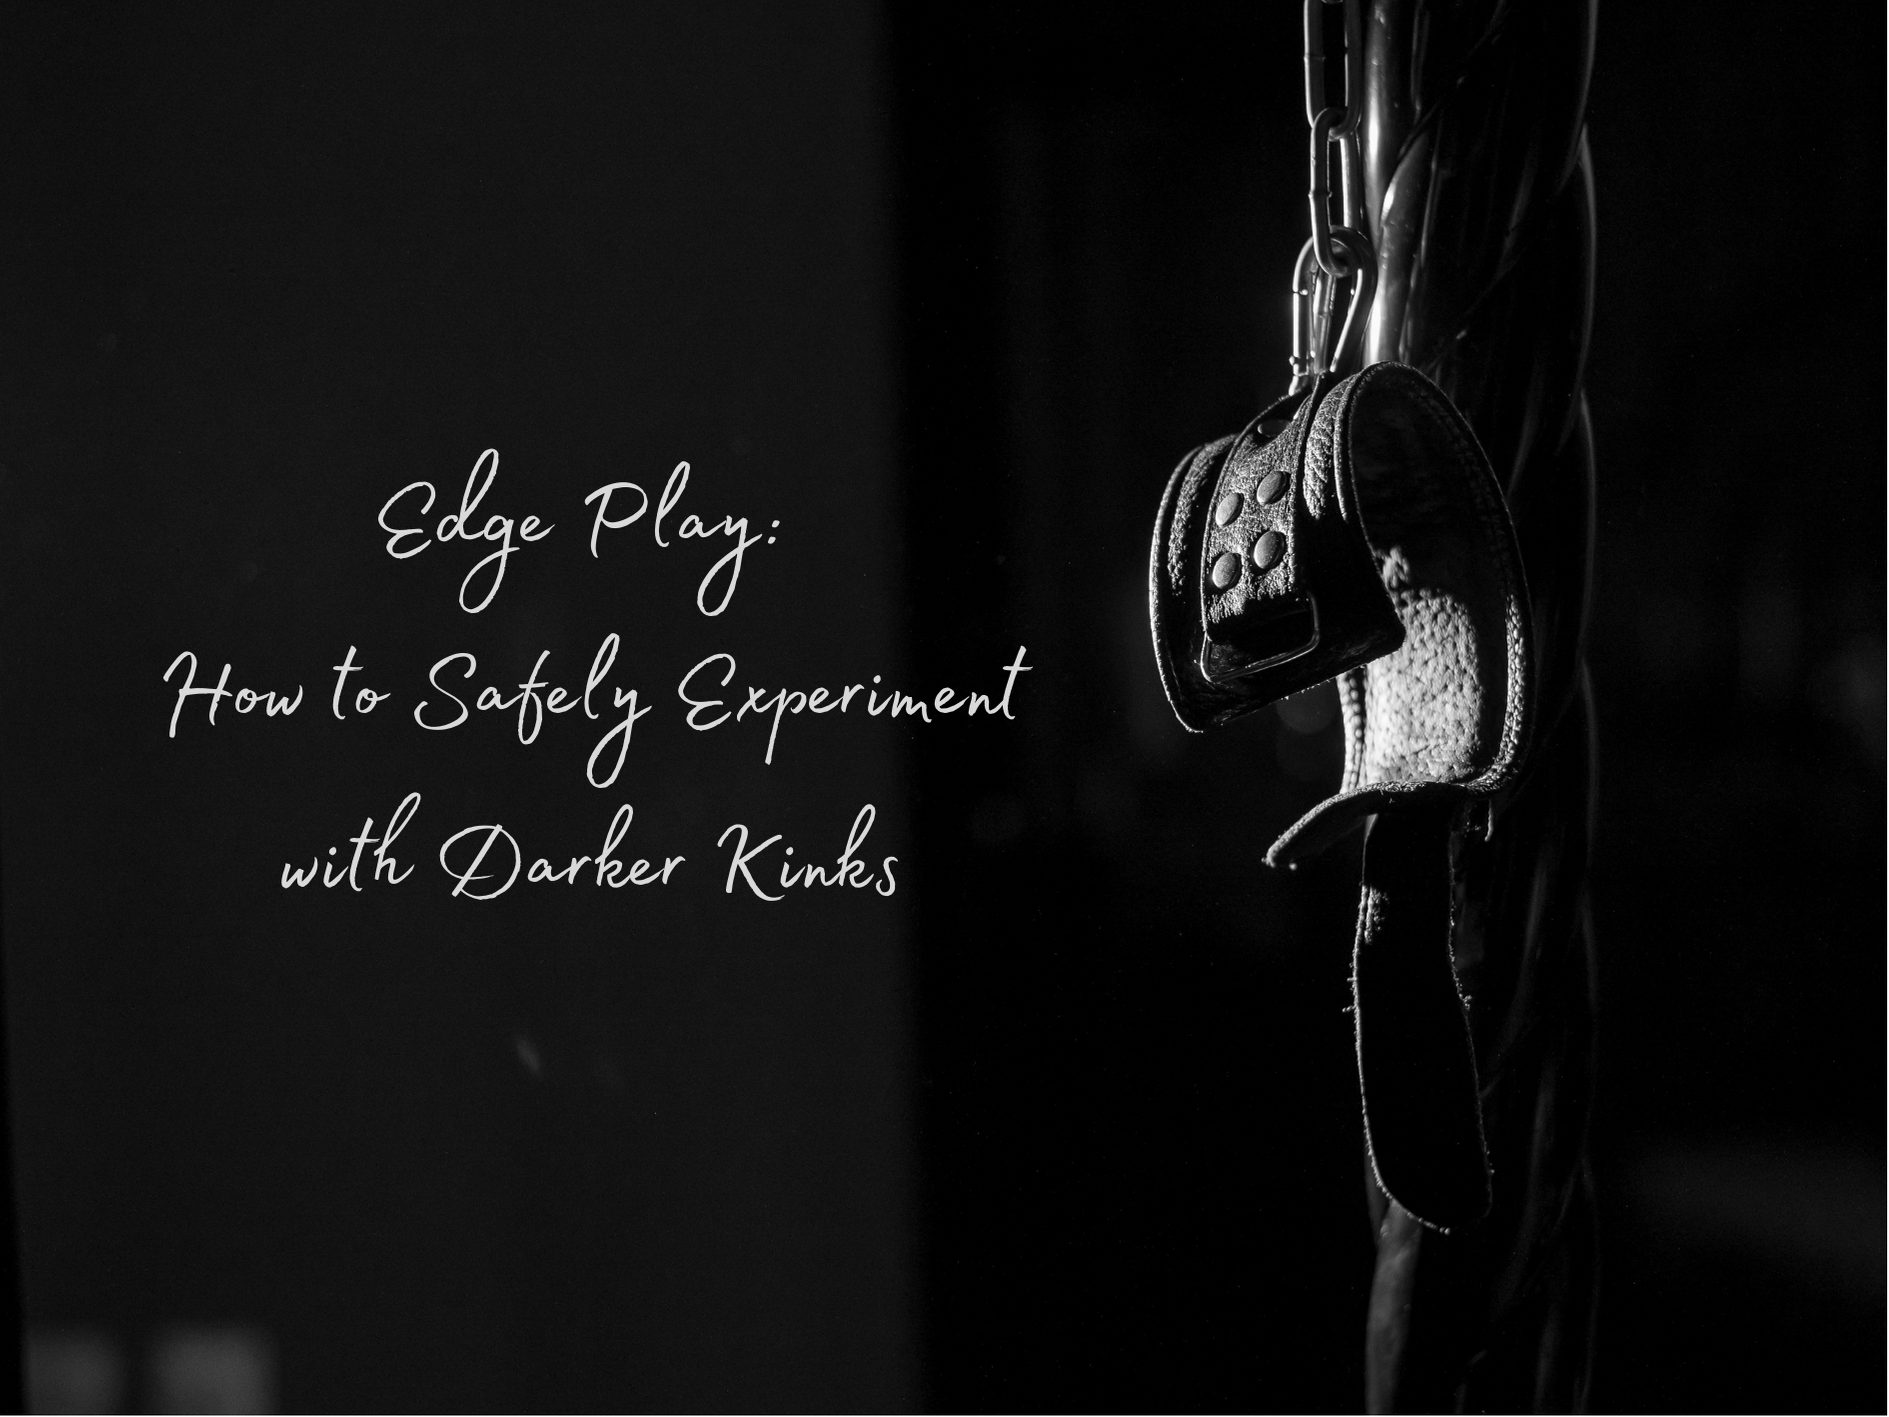 Edge Play: How to Safely Experiment with Darker Kinks